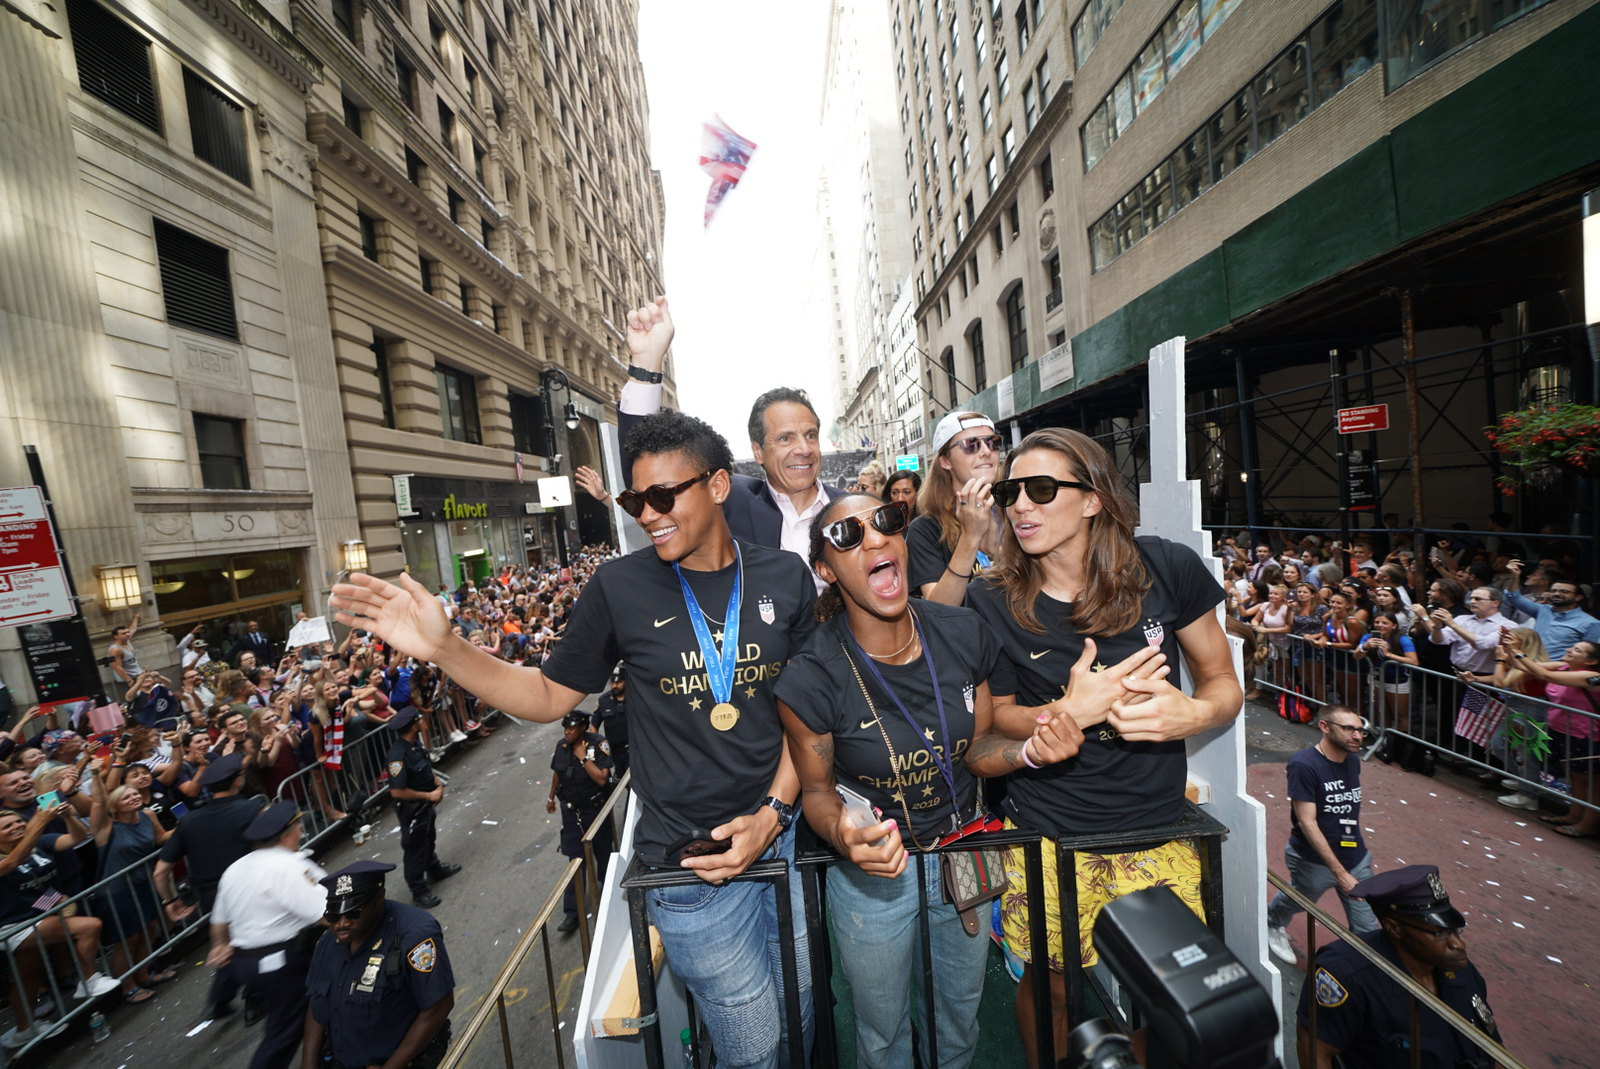 At Ticker-Tape Parade Celebrating the World Champion U.S. Women's Soccer Team, Governor Cuomo Signs Pay Equity Legislation to Close the Gender Wage Gap